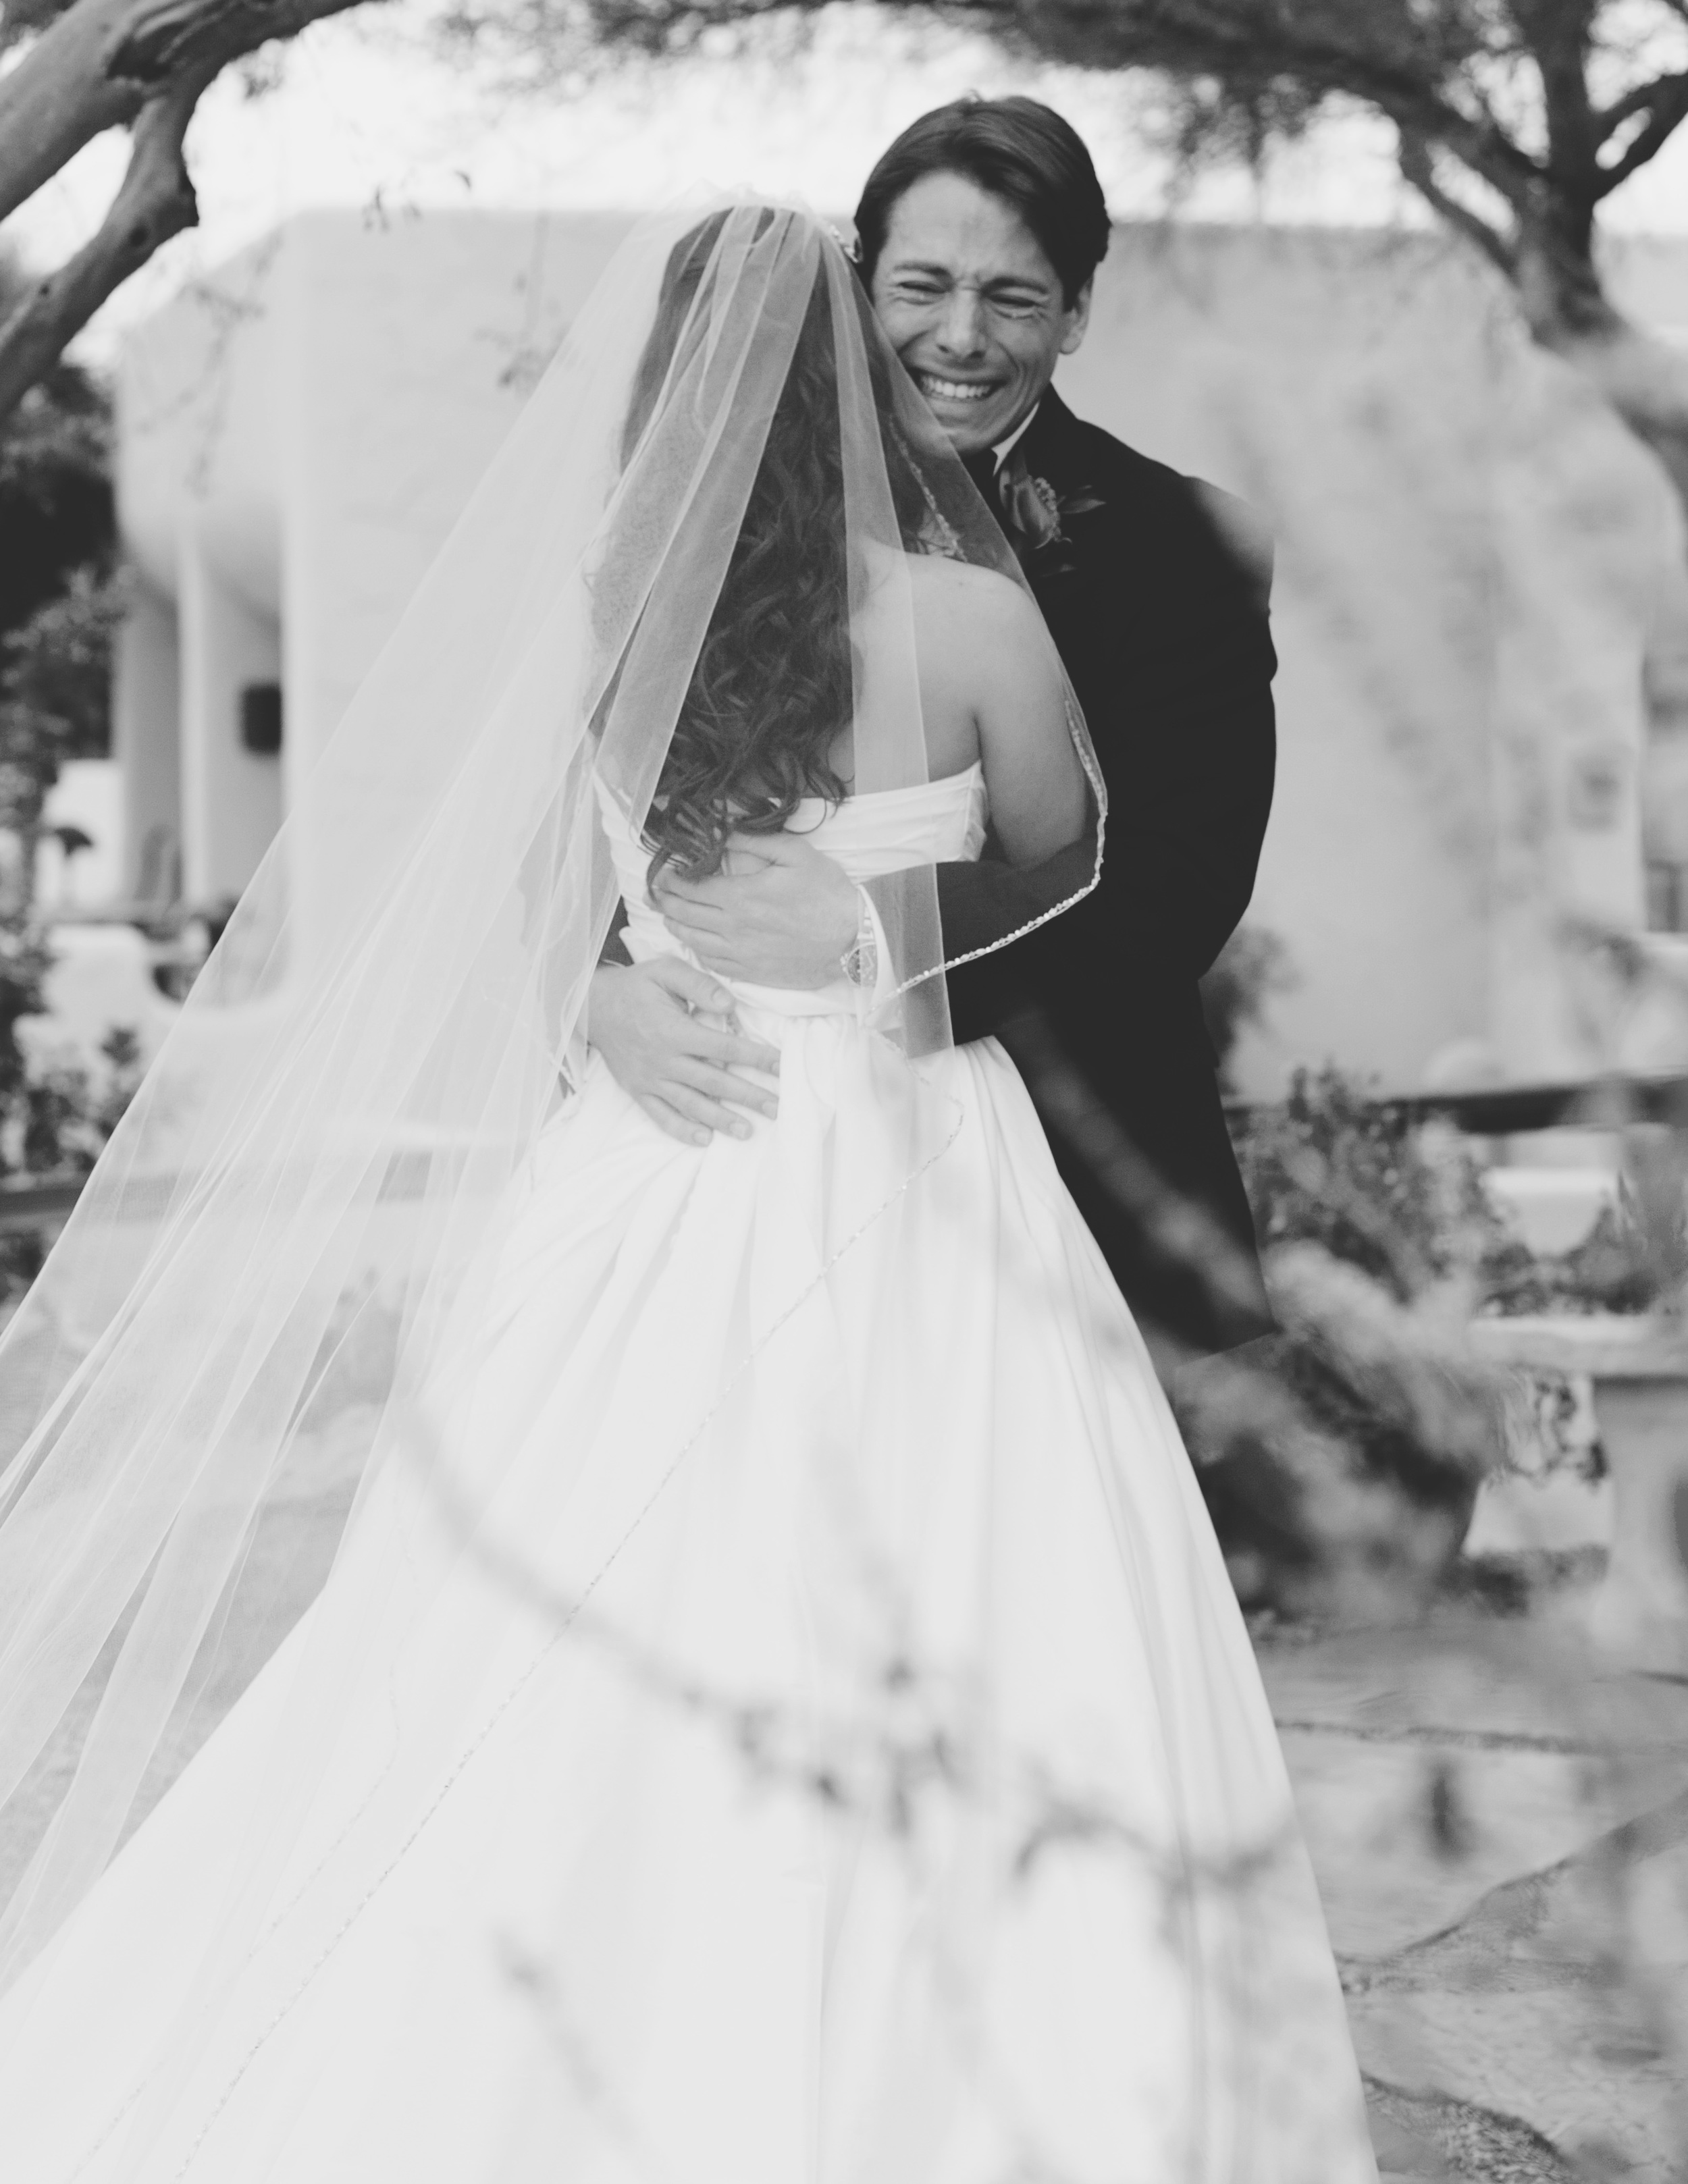 Groom sees the bride at the first-look and cries at the Camelback inn wedding in Scottsdale While Destination wedding photographer Lexia Frank photographs the wedding on film